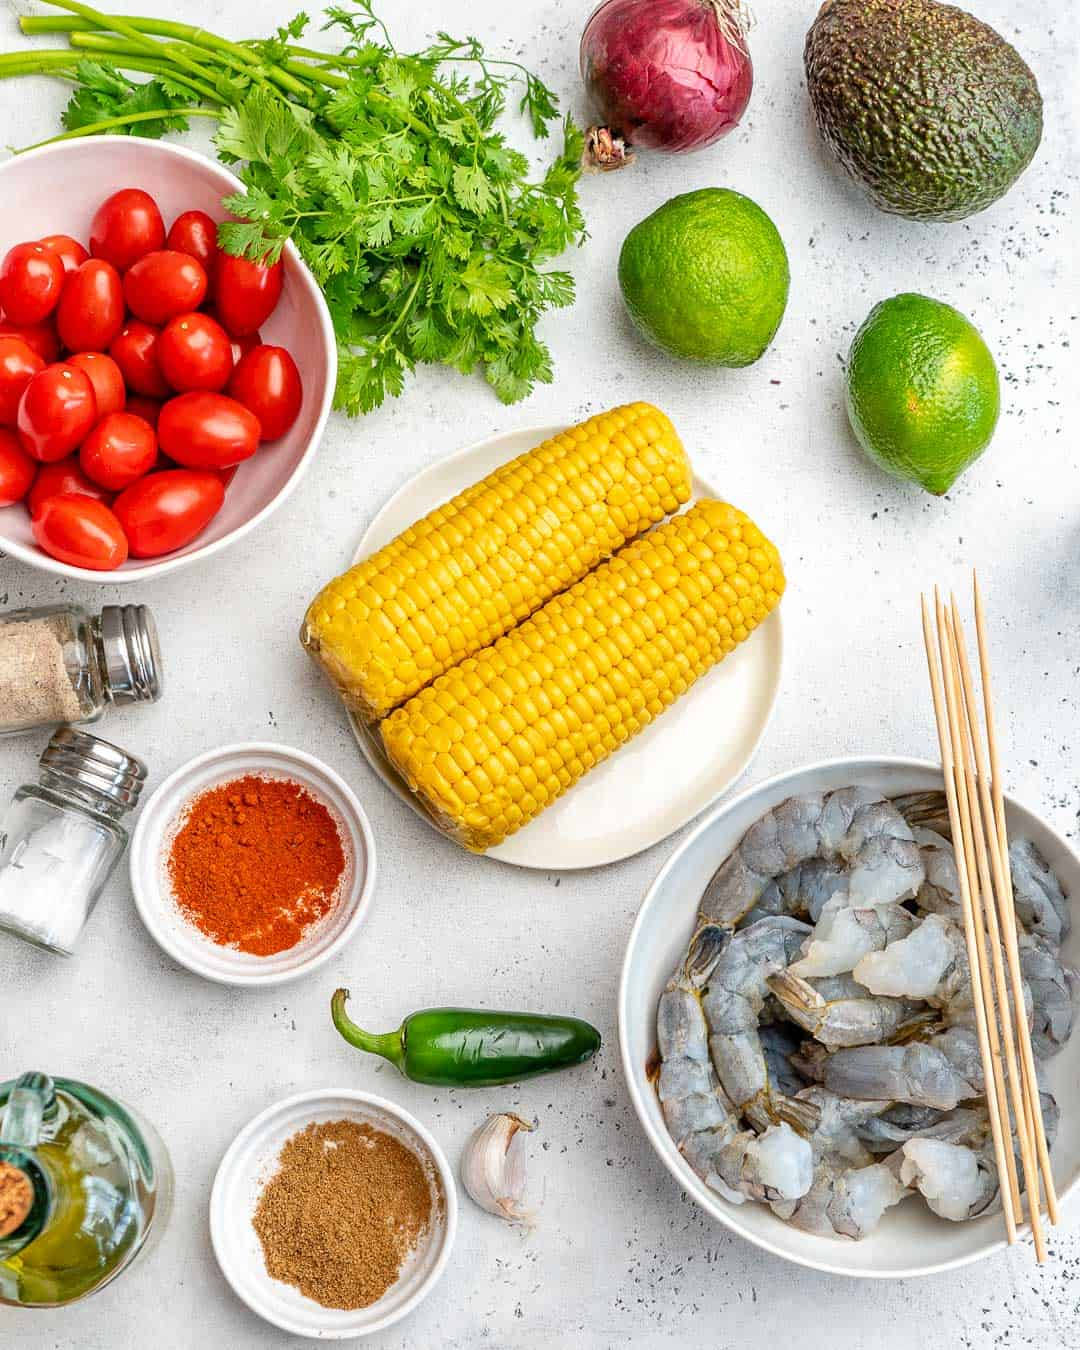 ingredients for the corn salad